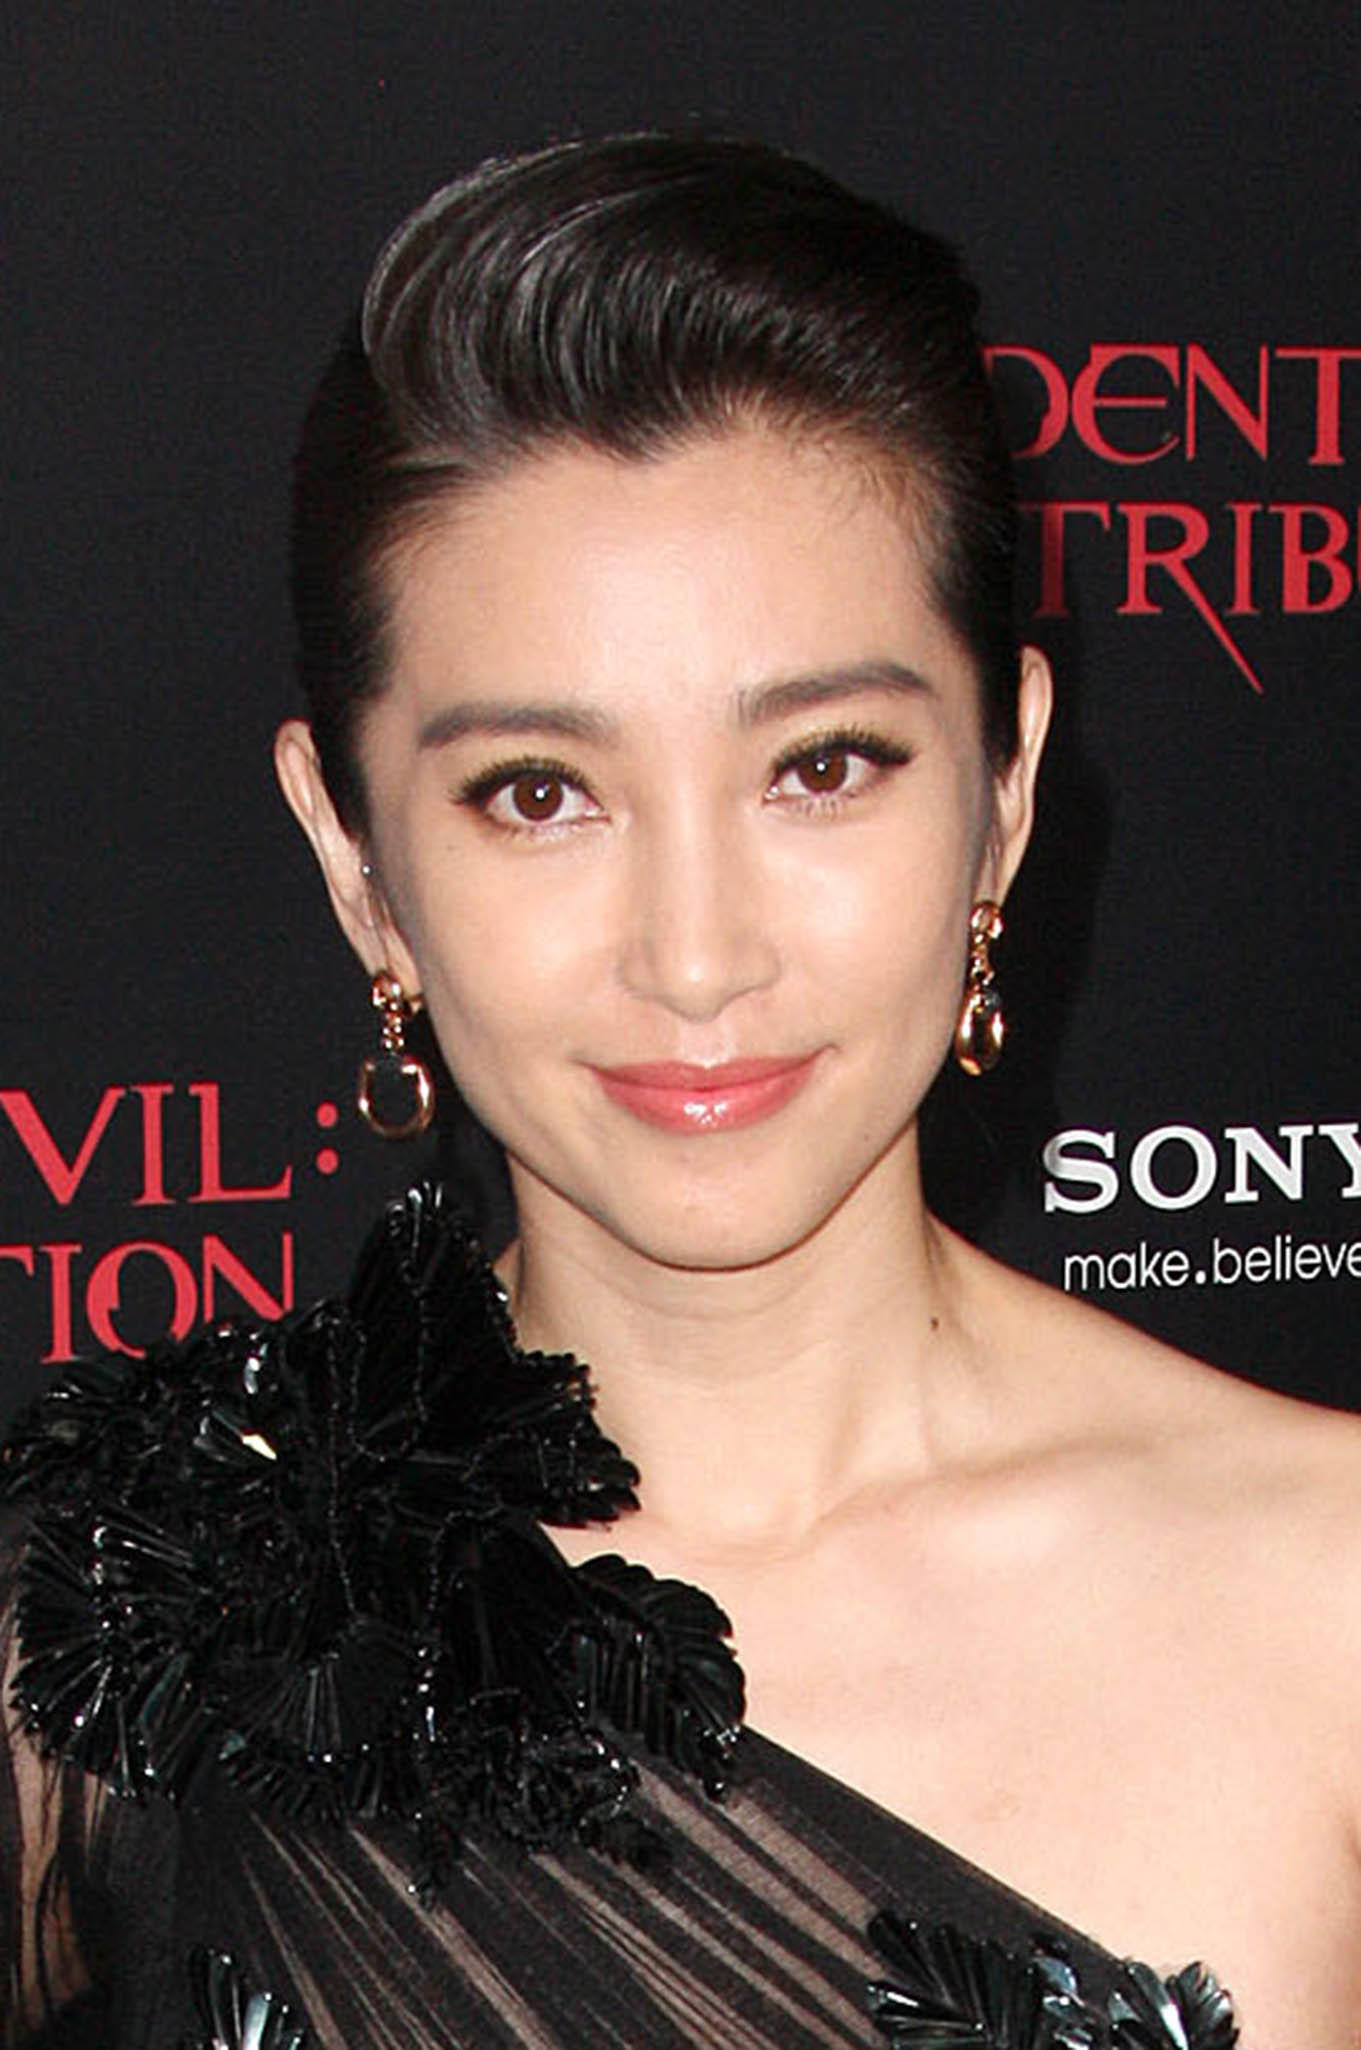 Li Bingbing naked (78 photos), pictures Pussy, YouTube, underwear 2020